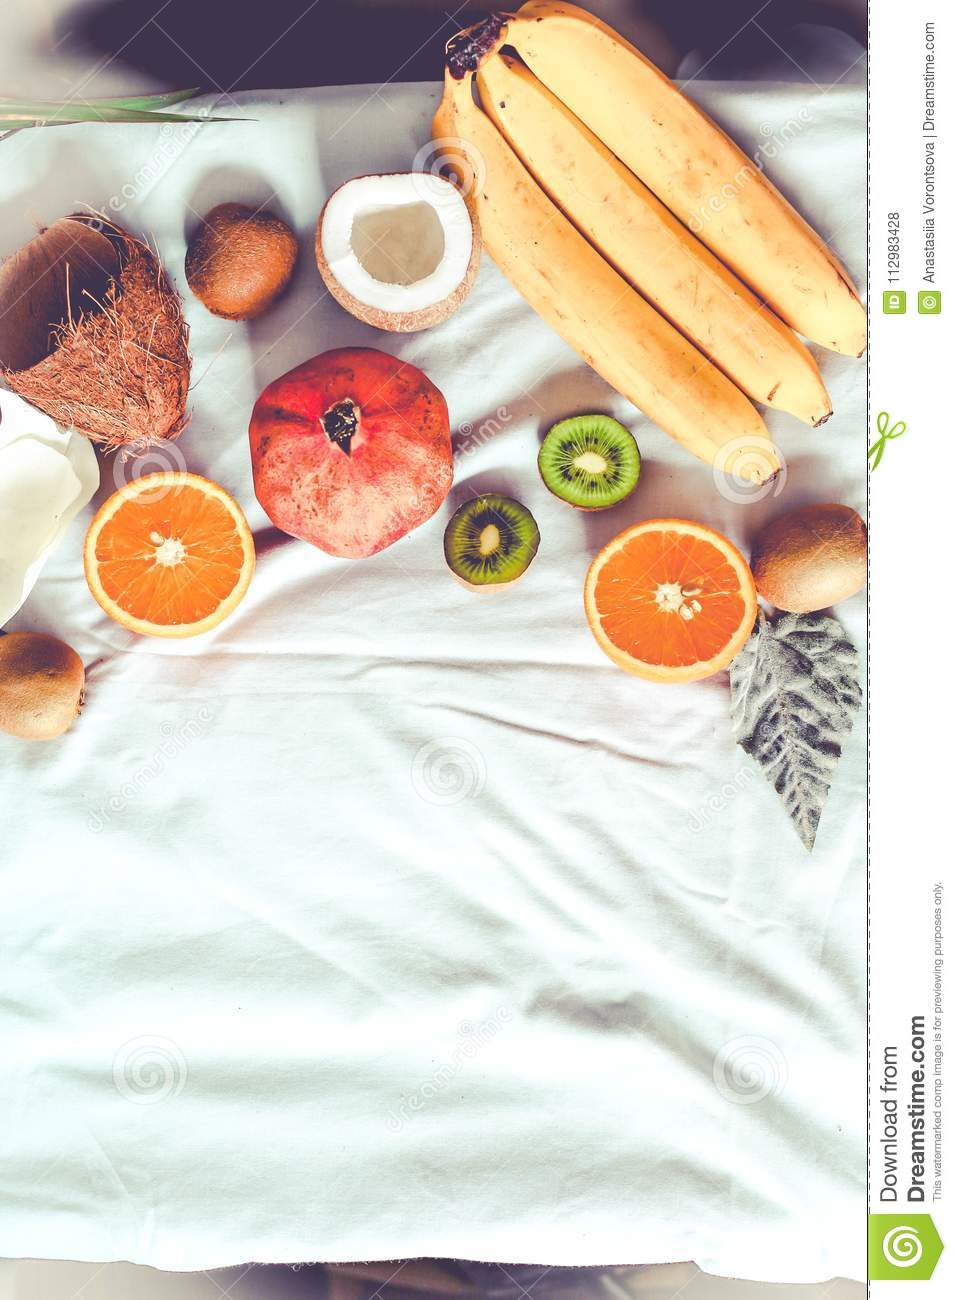 Fresh fruit background. Healthy eating and dieting concept. Winter assortment. Top view. Tone.